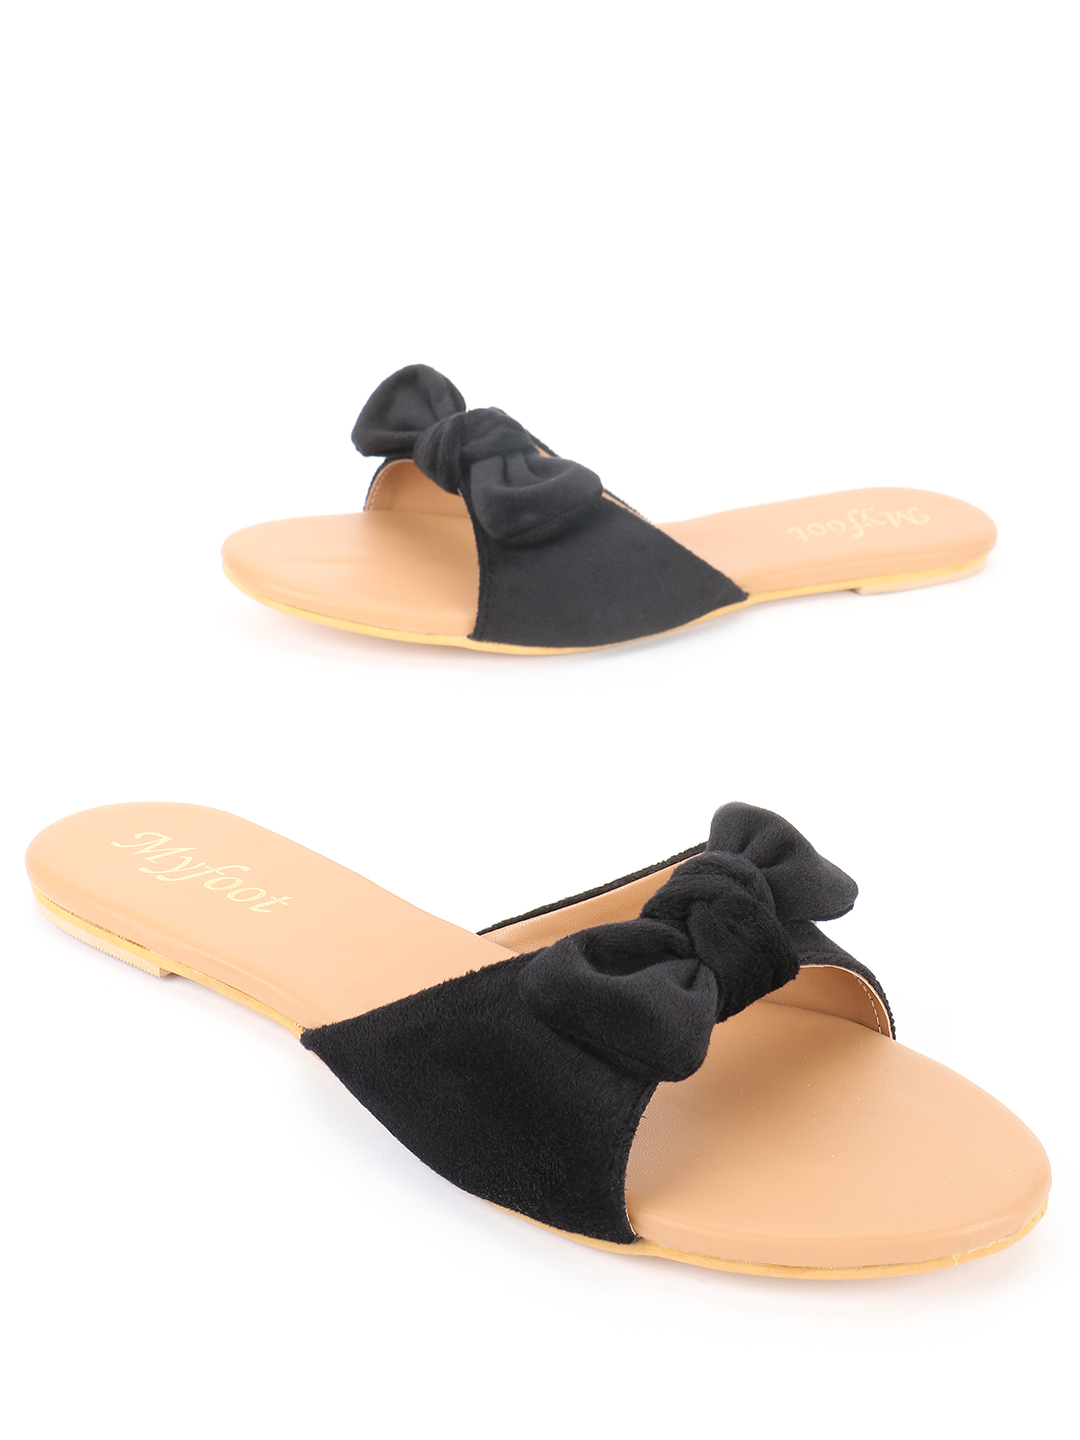 My Foot Couture Black Velour Bow Tie Flat Sandals 1